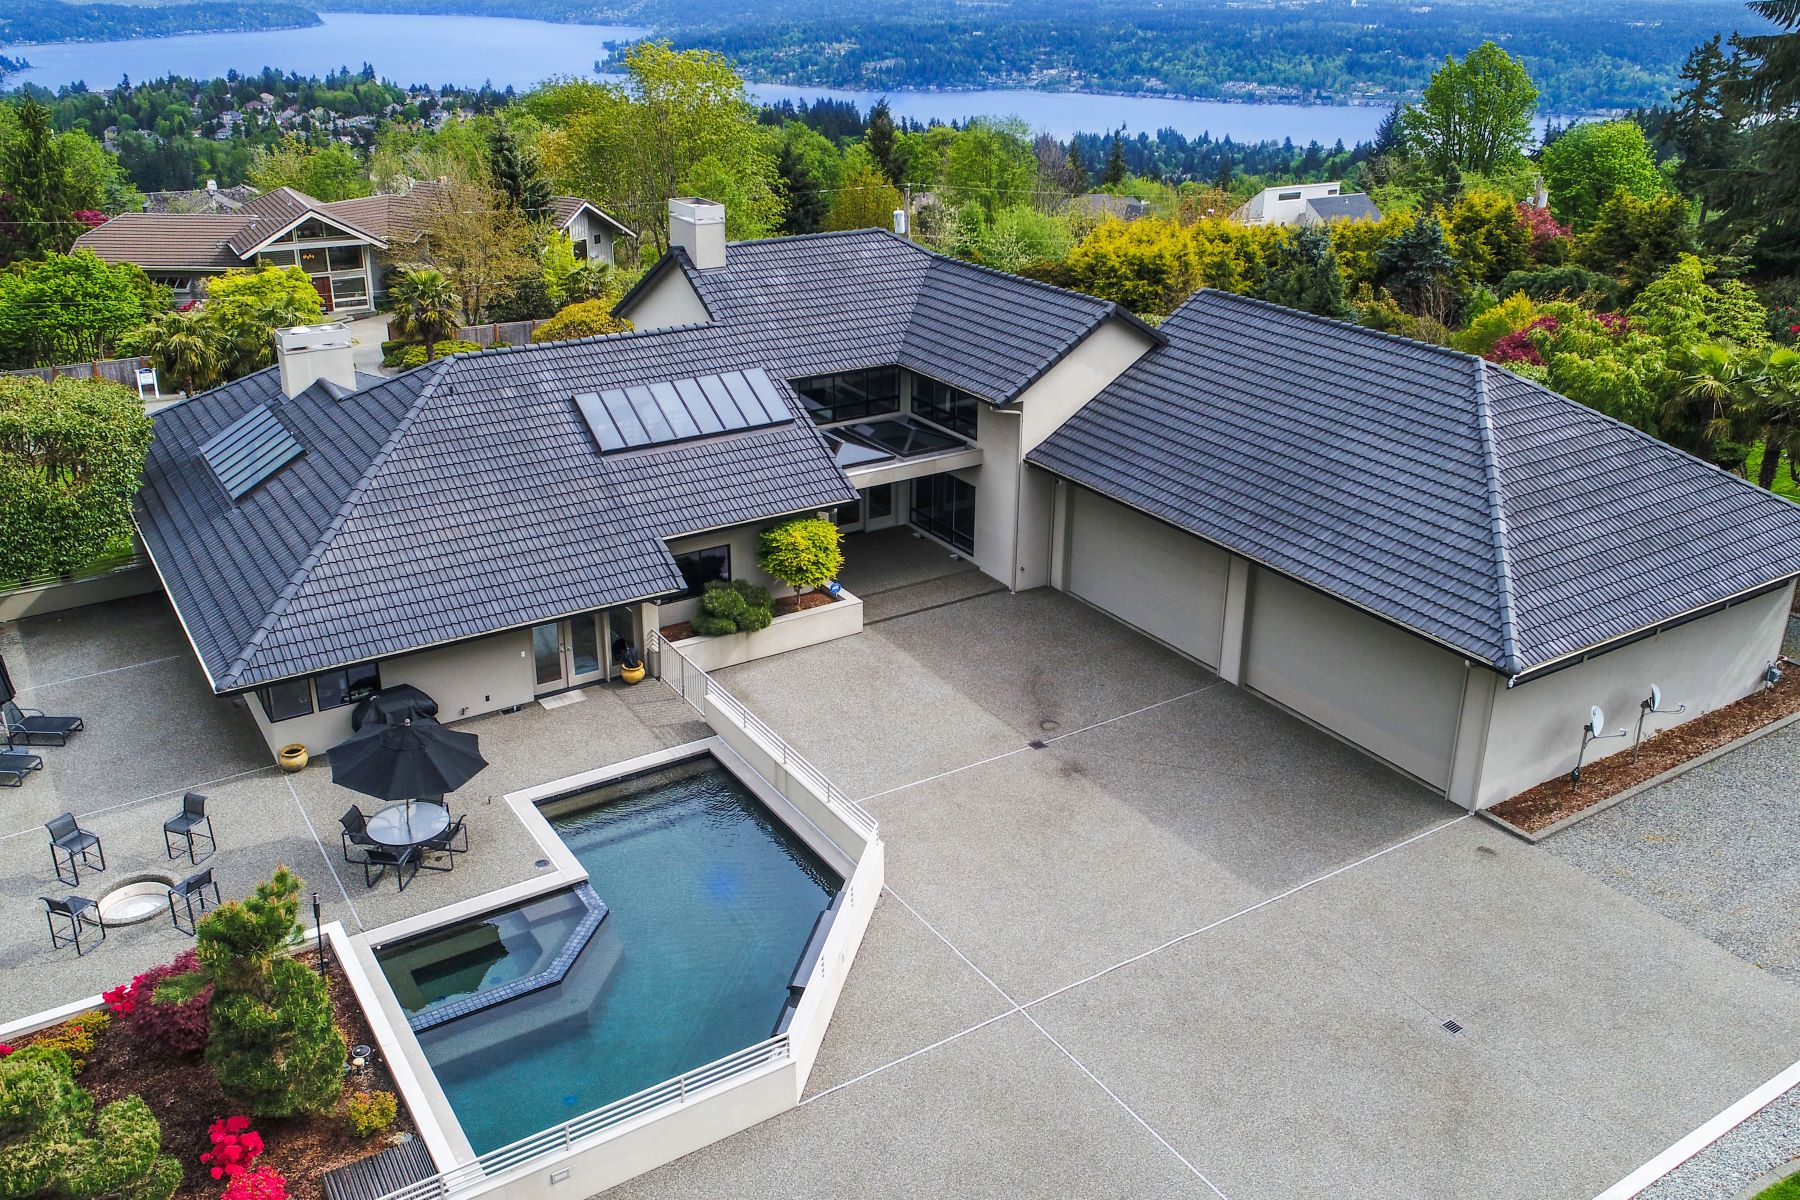 Single Family Home for Sale at Architecturally Iconic Lakemont Masterpiece 5924 170th Ave SE Bellevue, Washington 98006 United States